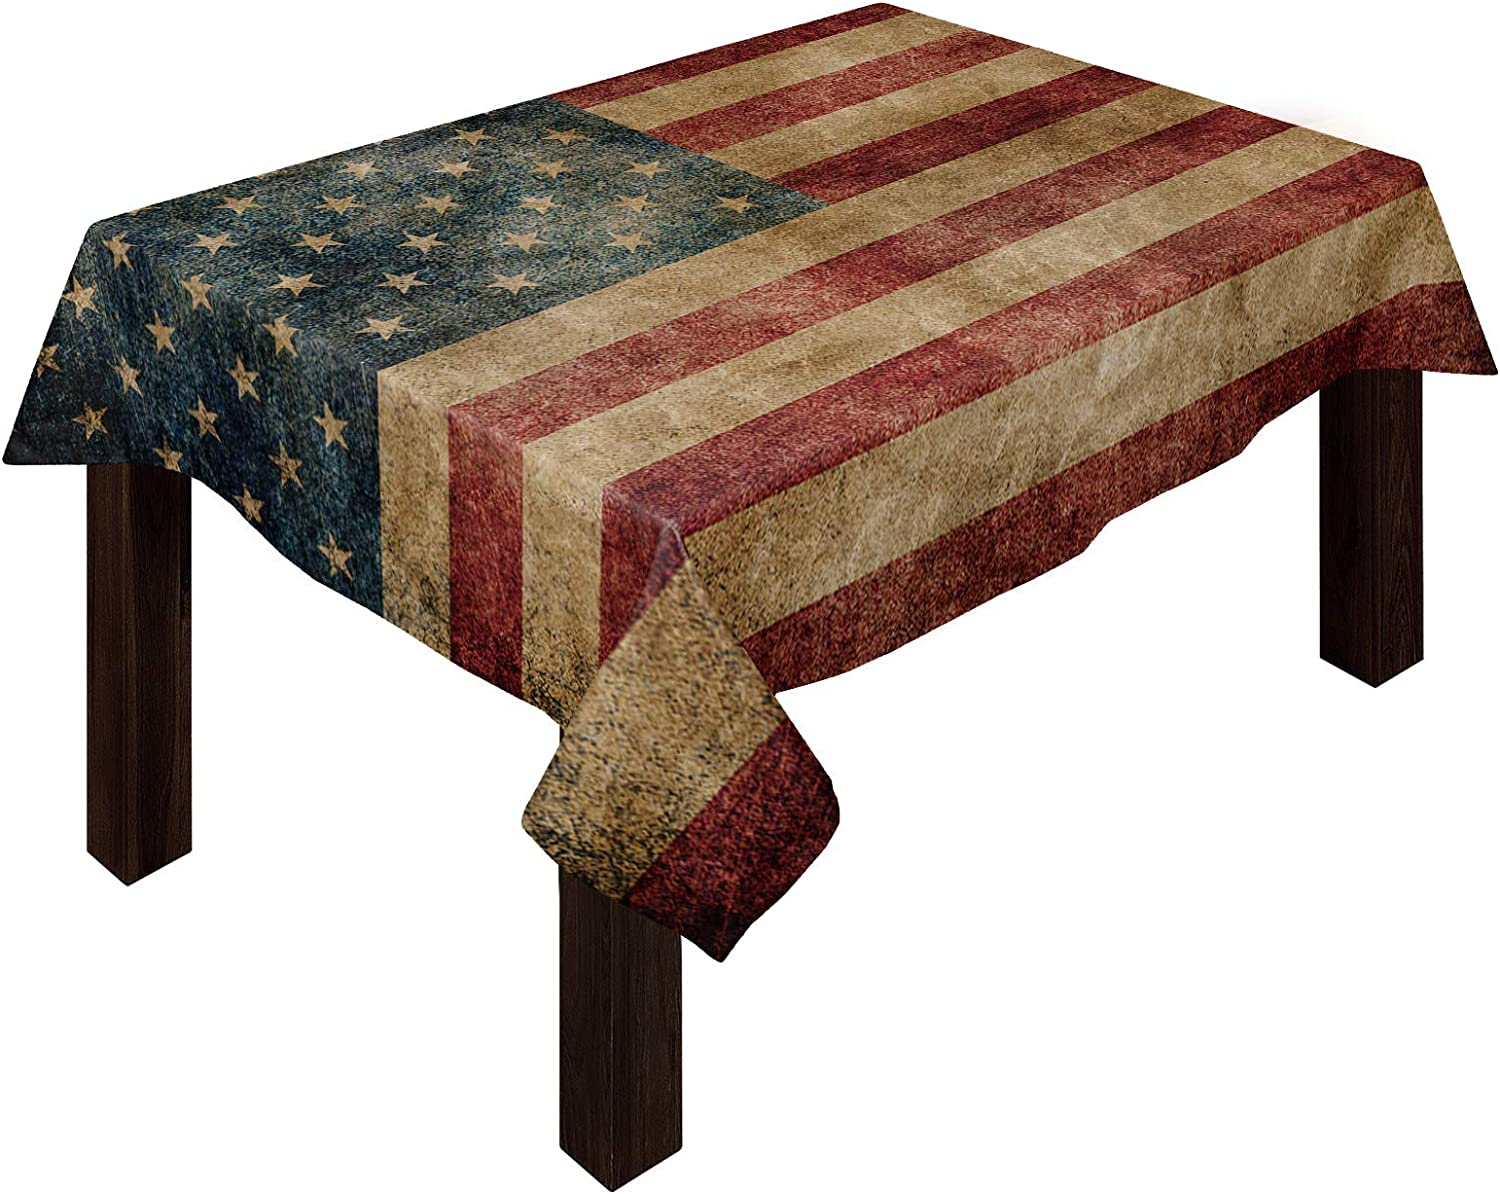 Cotton High material Linen Tablecloth Under blast sales 4th of July for Cloth Ki Outdoor Picnic